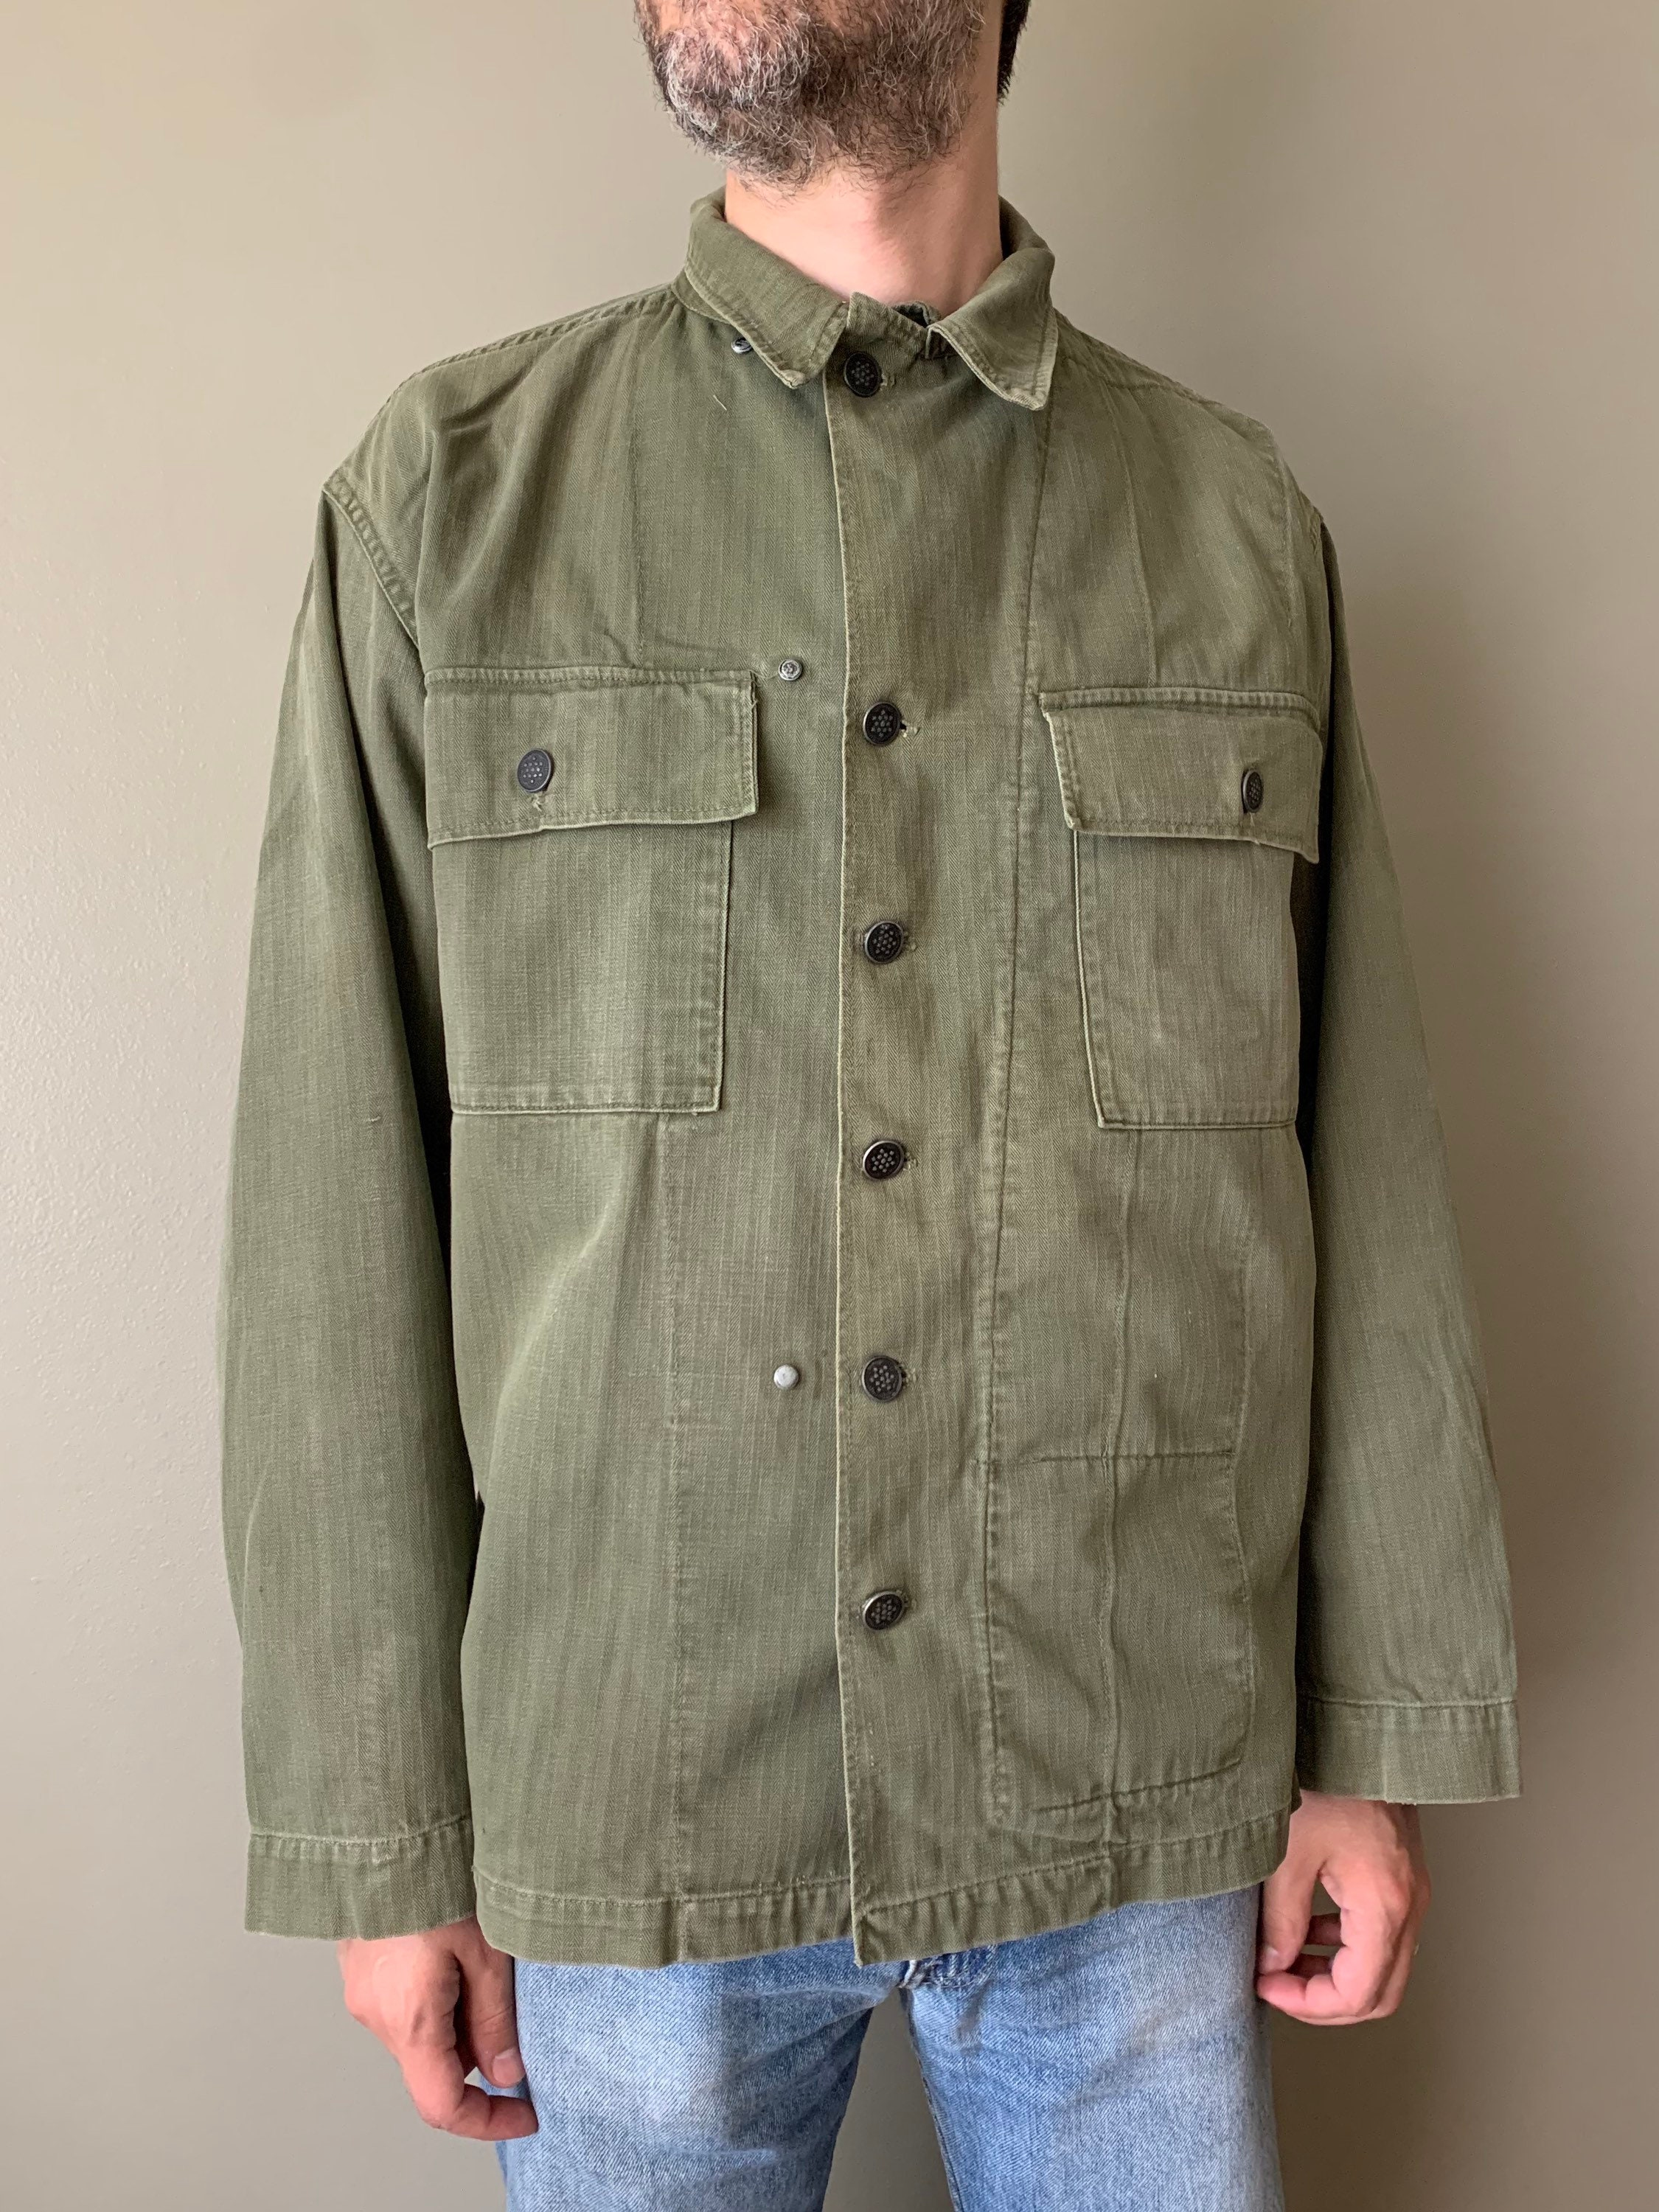 1940s Men's Shirts, Sweaters, Vests 1940S Wwii Herringbone Twill Us Army Field JacketVintage Antique Hbt Shirt 13 Star Buttons Size Medium 1942 Sage Green Light Shade $160.00 AT vintagedancer.com